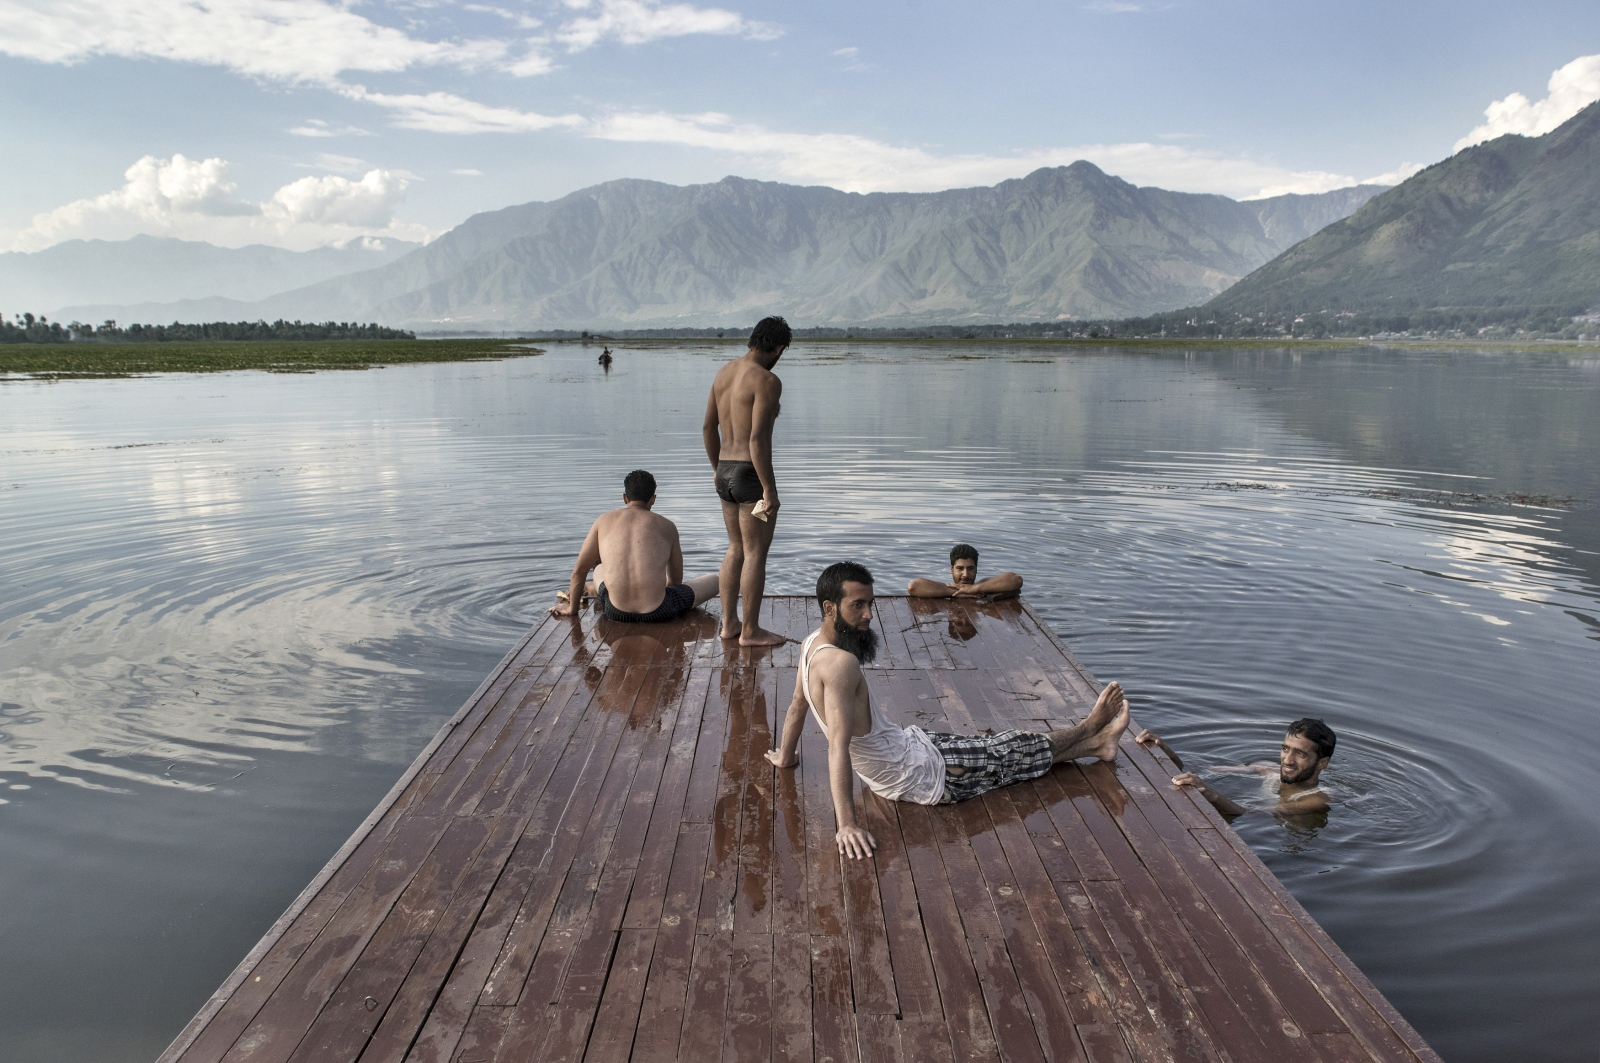 """Photography image - A group of boys swim in the Dal Lake of Srinagar, the only safe and free area during the curfew very often imposed by the Indian authorities. The valley of Kashmir today is one of the most militarized zones in the world but a Persian poet, amazed by its beauty, in the XII century wrote: """"If there is a paradise on earth, it is here""""."""